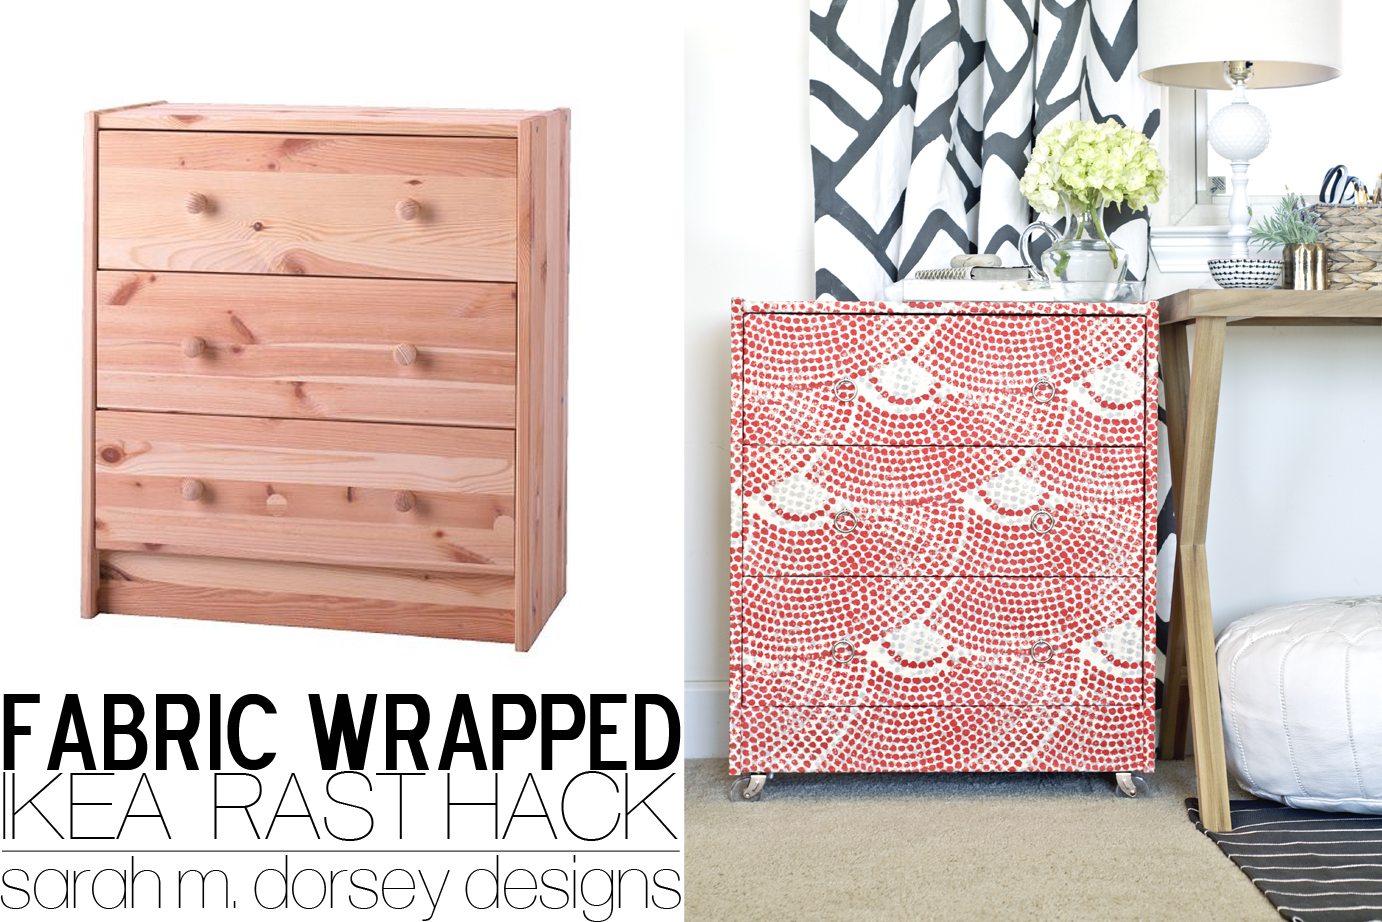 Ikea Rast Dresser Hack Fabric Wred With Custom Ring Pulls And Acrylic Casters